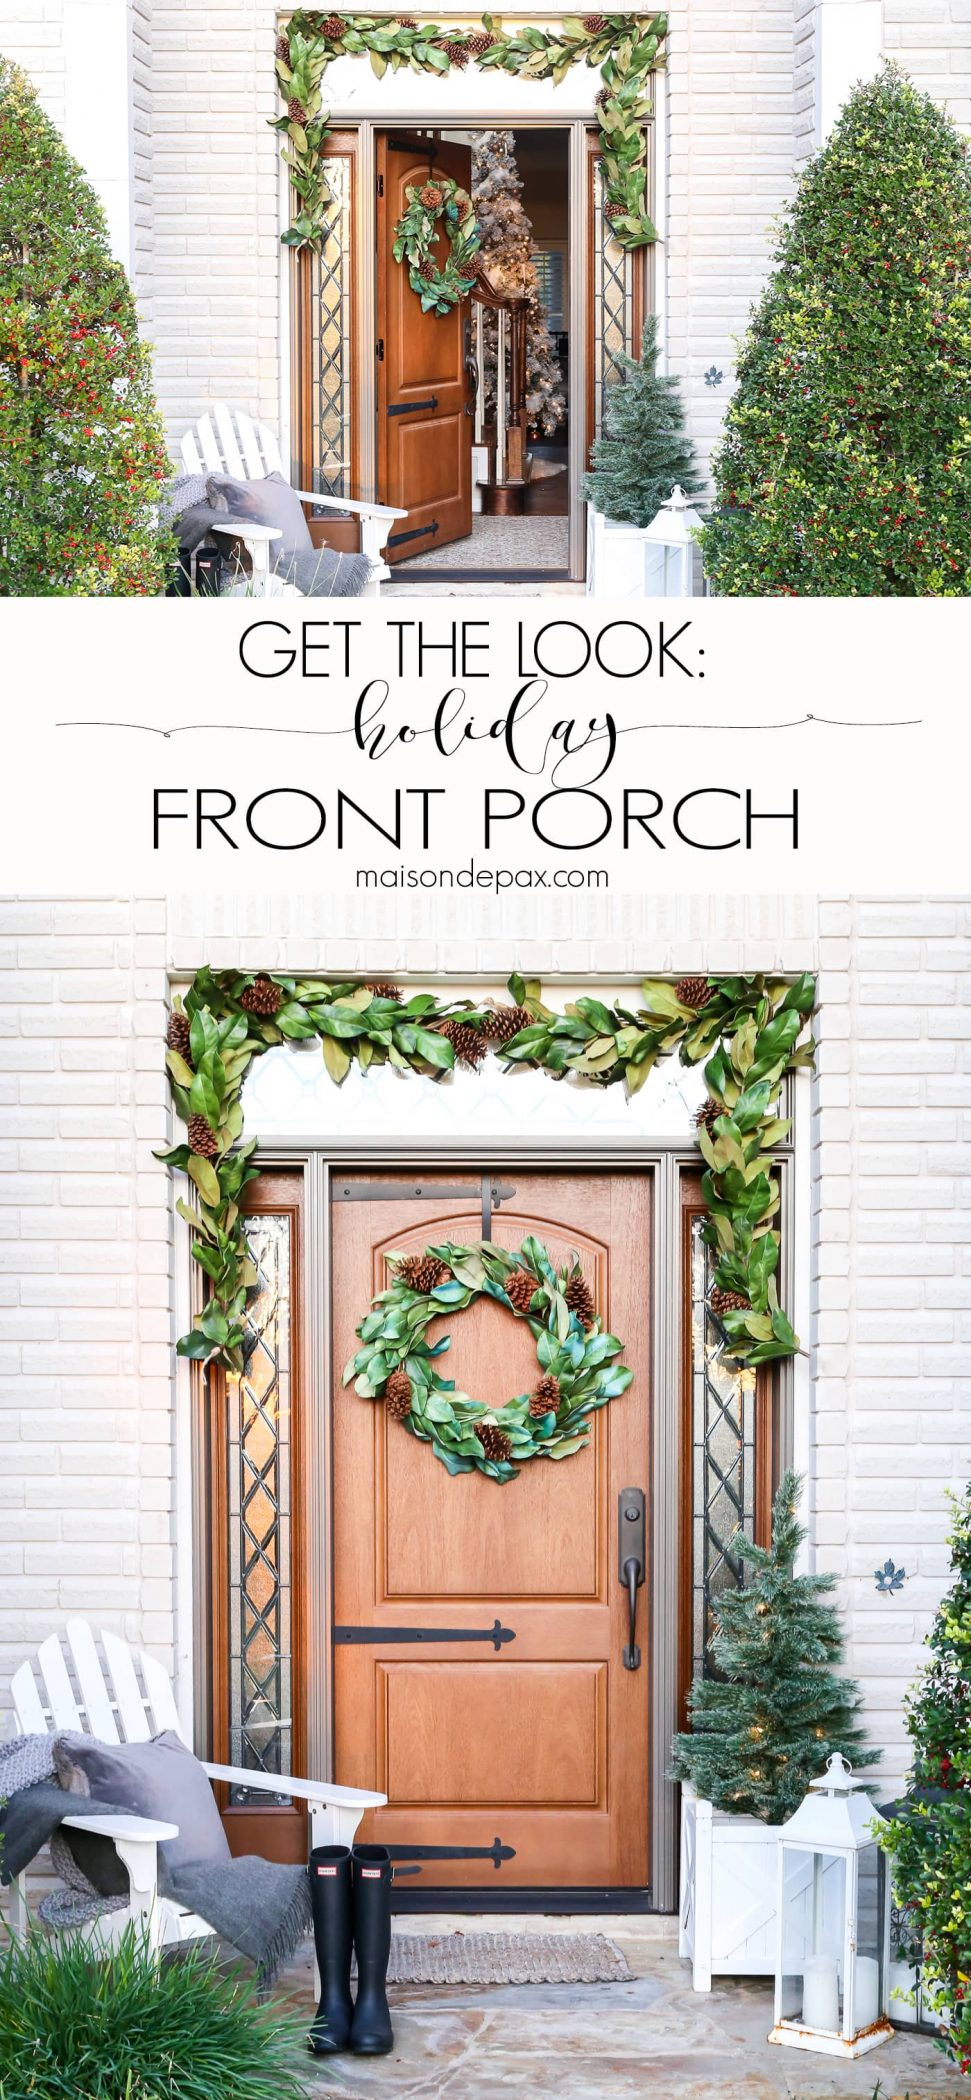 Christmas front porch decorating ideas #Christmasporch